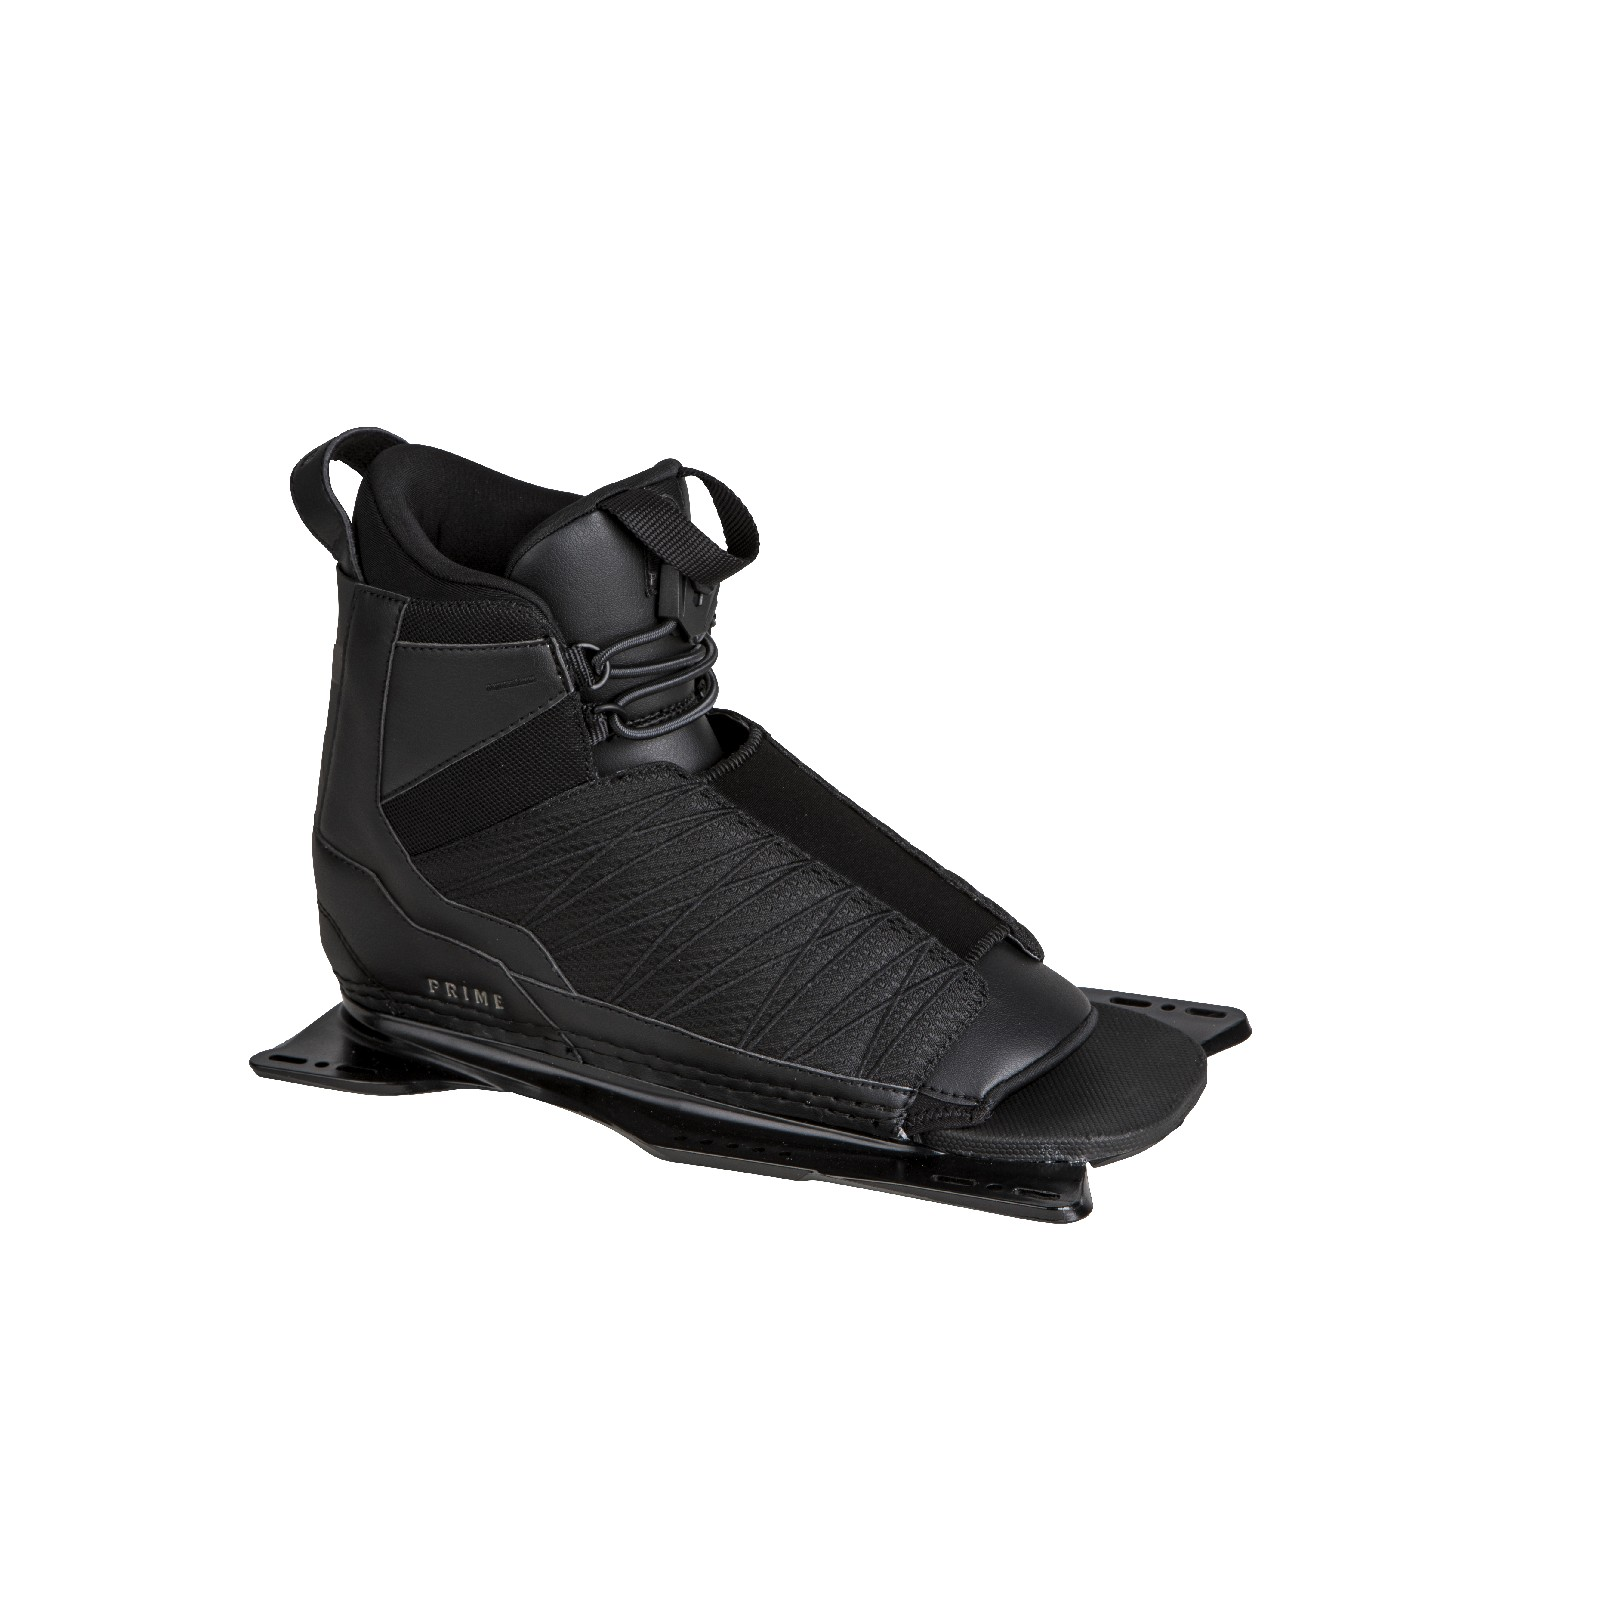 PRIME BOOT - FRONT FEATHER FRAME RADAR 2019